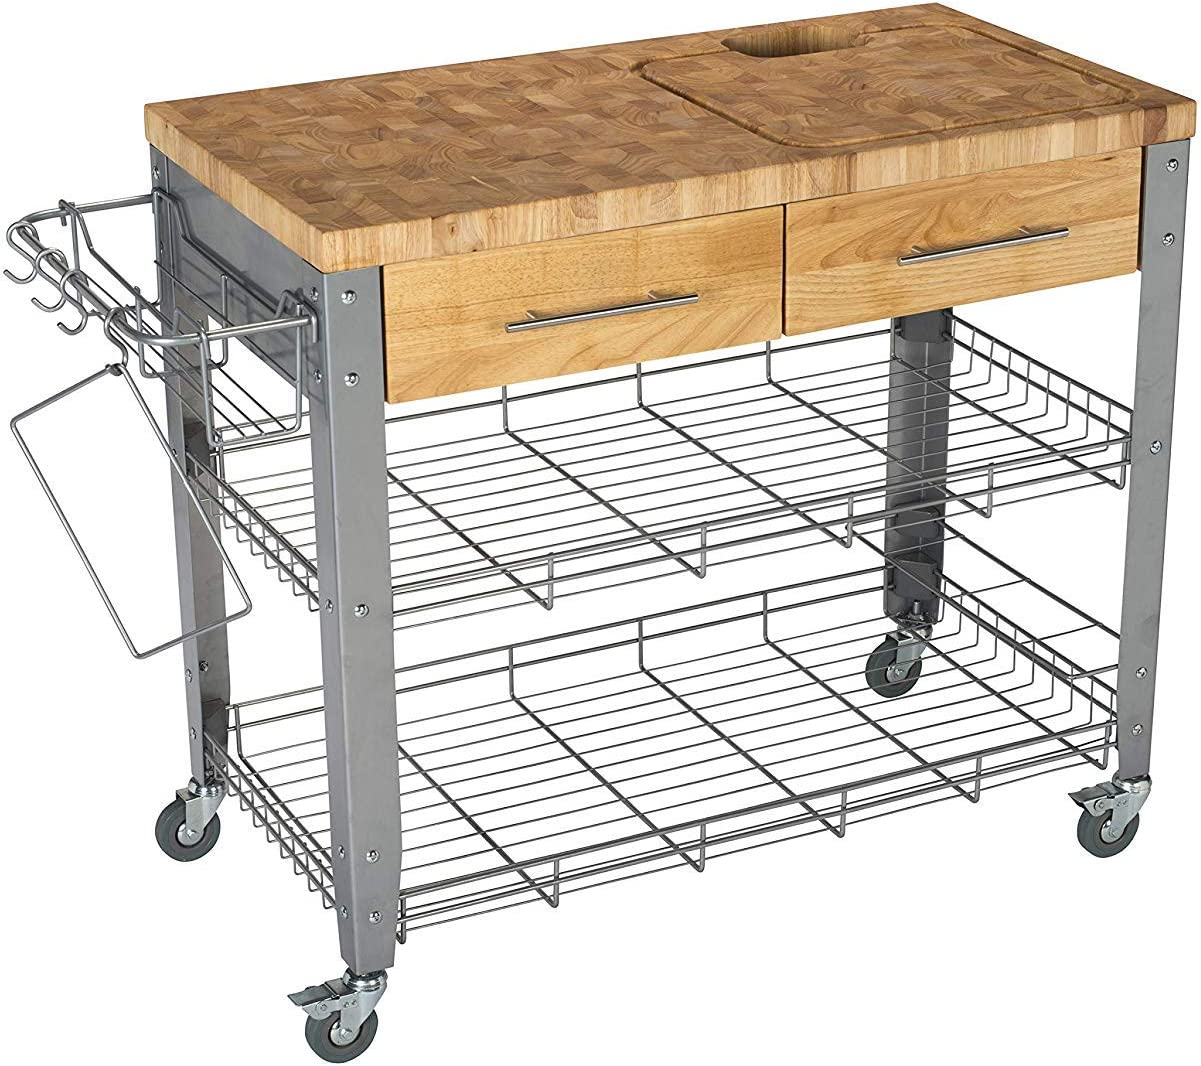 Chris & Chris Rolling Kitchen Island-Food Prep Table-Durable Cutting  Surface, Juice Groove and Collection Pan-8 Storage Drawers, Condiment Rack  and 8